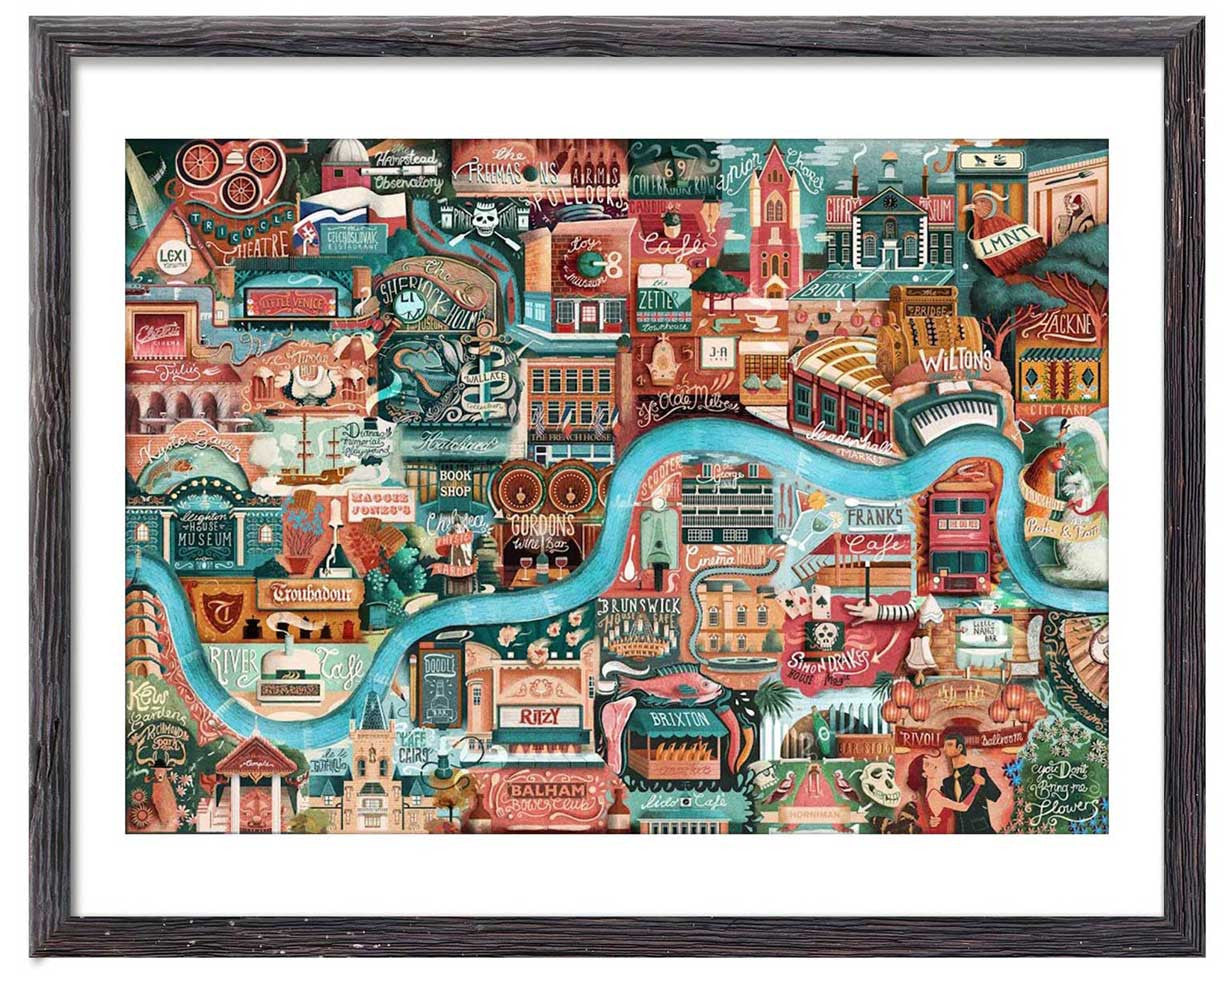 Illustrated map of London's great little places